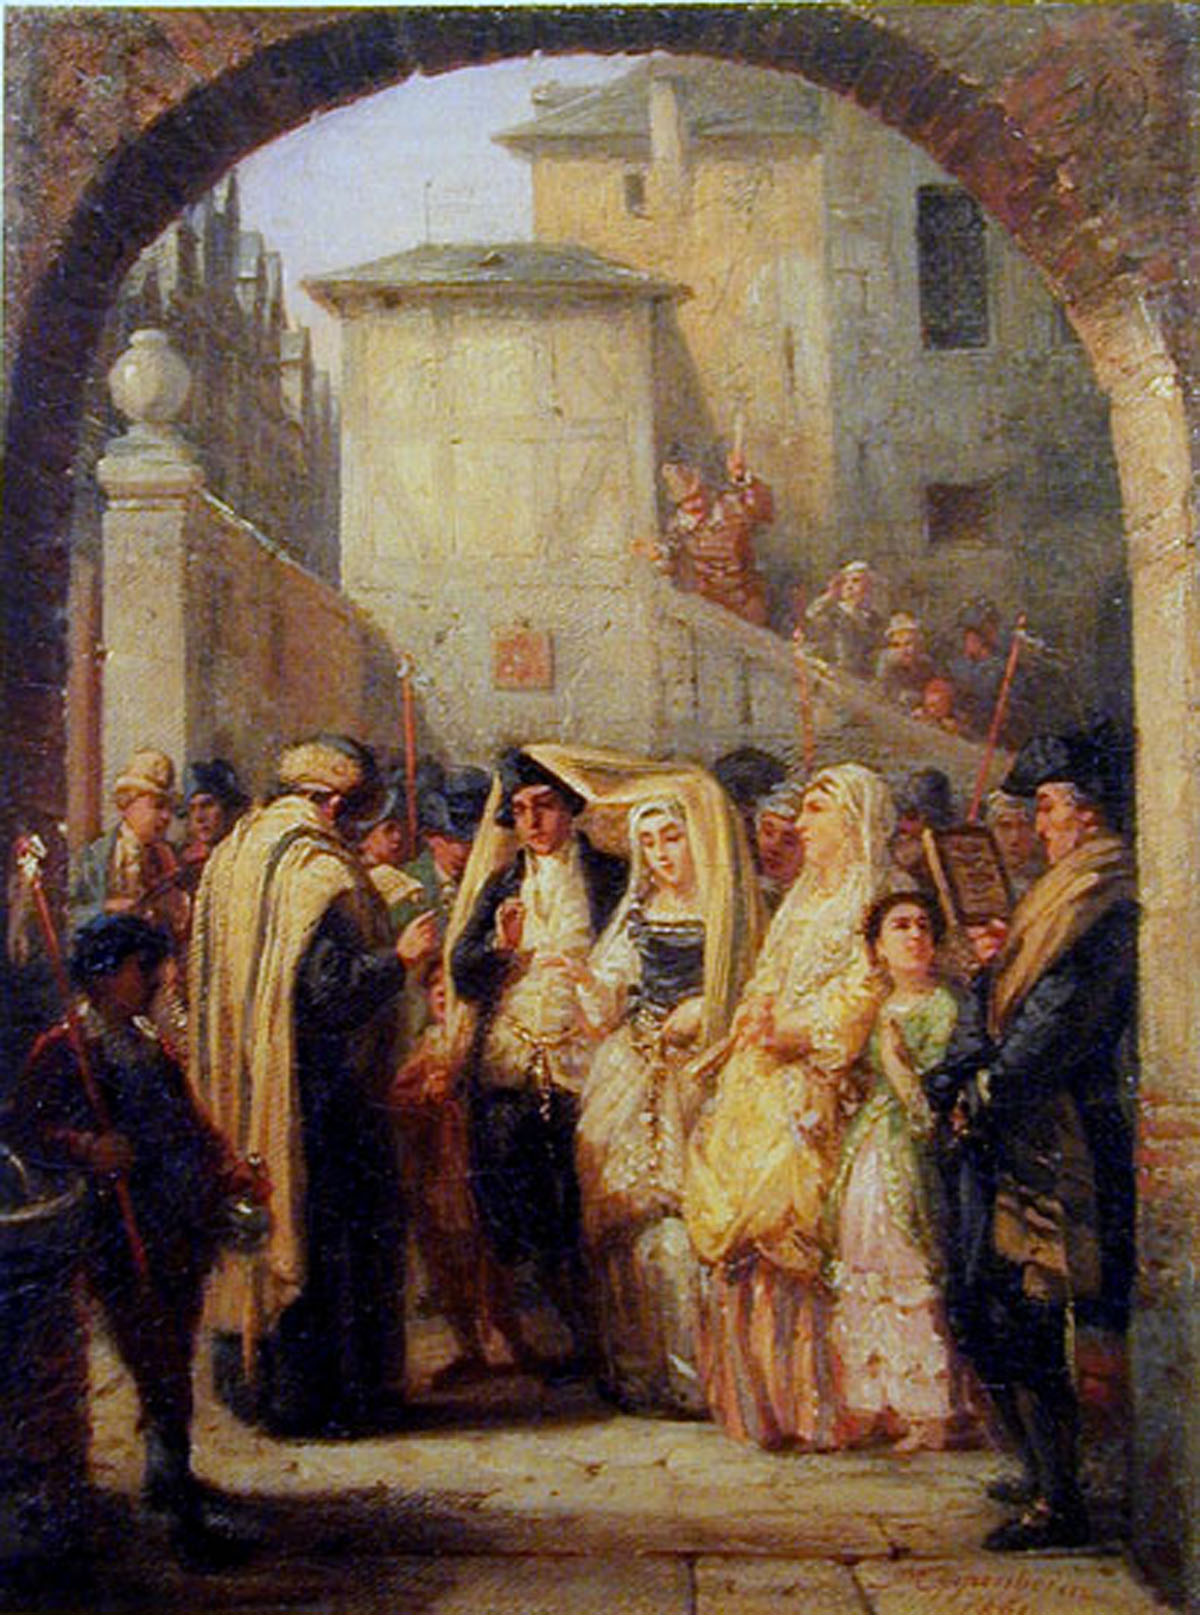 The Wedding (1861) by Moritz Oppenheim